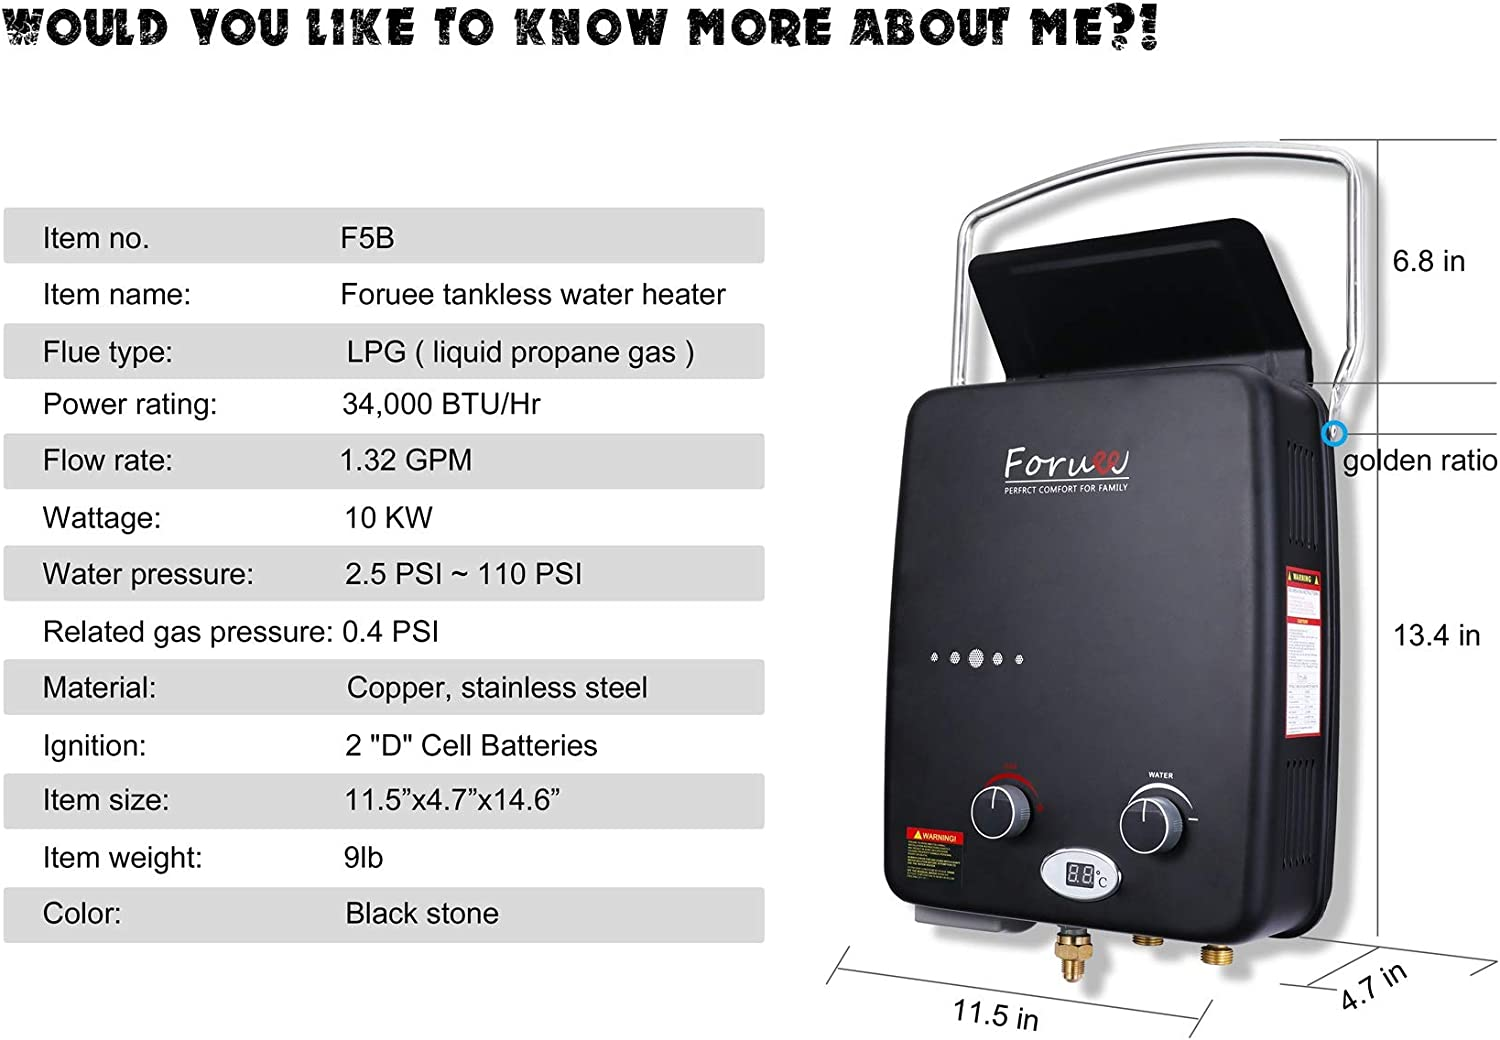 Portable Propane Tankless Water Heater, 1.32GPM/5Litre Capacity, 6-IN-1 Multiple Protection, 7 More Usage Scenarios, Low Pressure Startup, Black - -